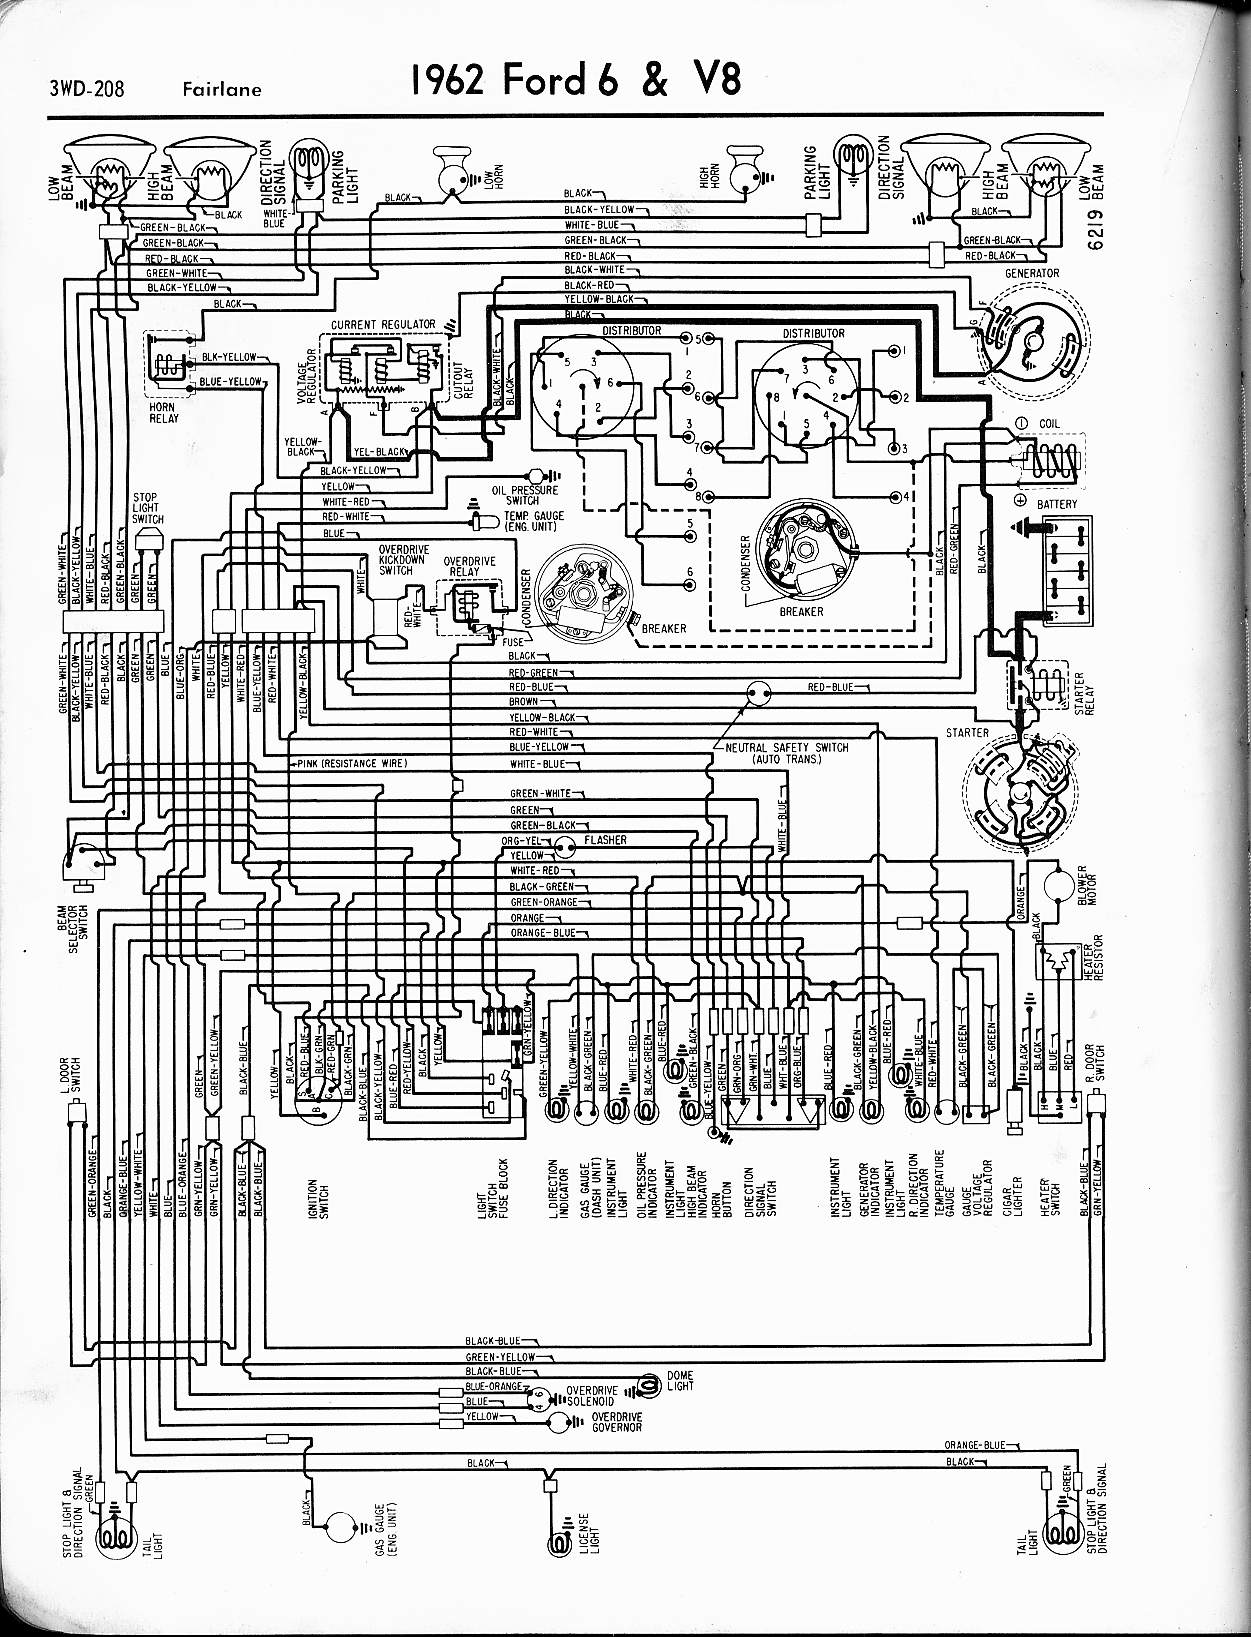 hight resolution of wiring diagram furthermore 1962 ford thunderbird wiring diagram on 2002 ford explorer fuse diagram 1962 ford fuse block diagram